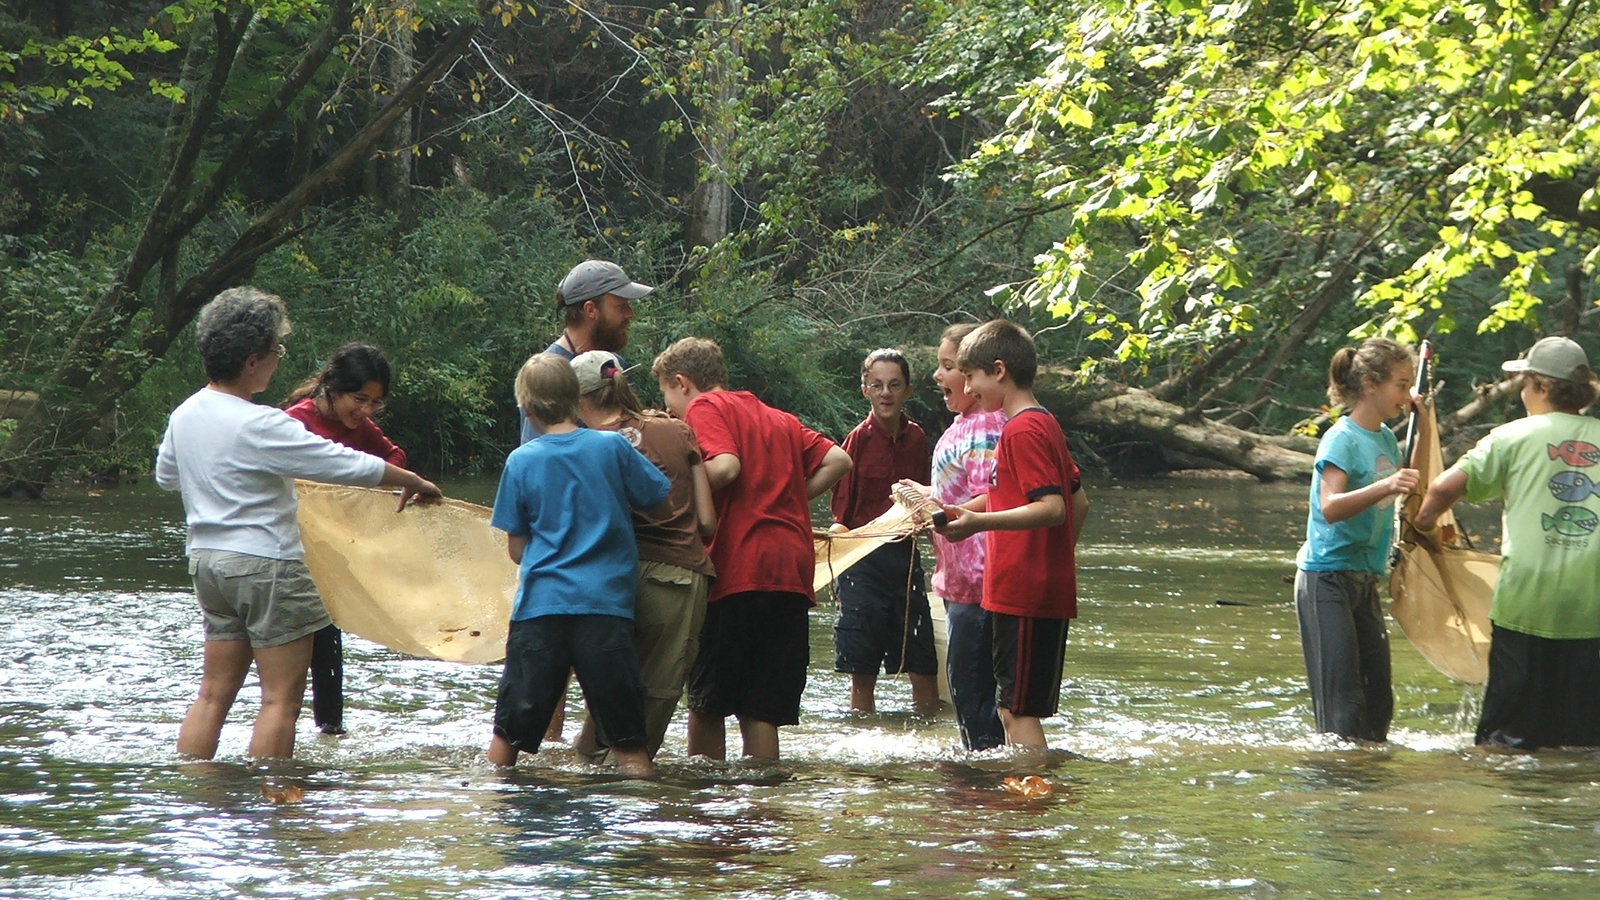 <h4>CLEAN WATER NETWORK</h4><h5>Our national Clean Water Network connects more than 250 local and regional watershed protection groups, so they can share ideas and resources, gain expertise, and band together to take on bigger challenges.</h5><em>Gordon Black / Cahaba River Society</em>